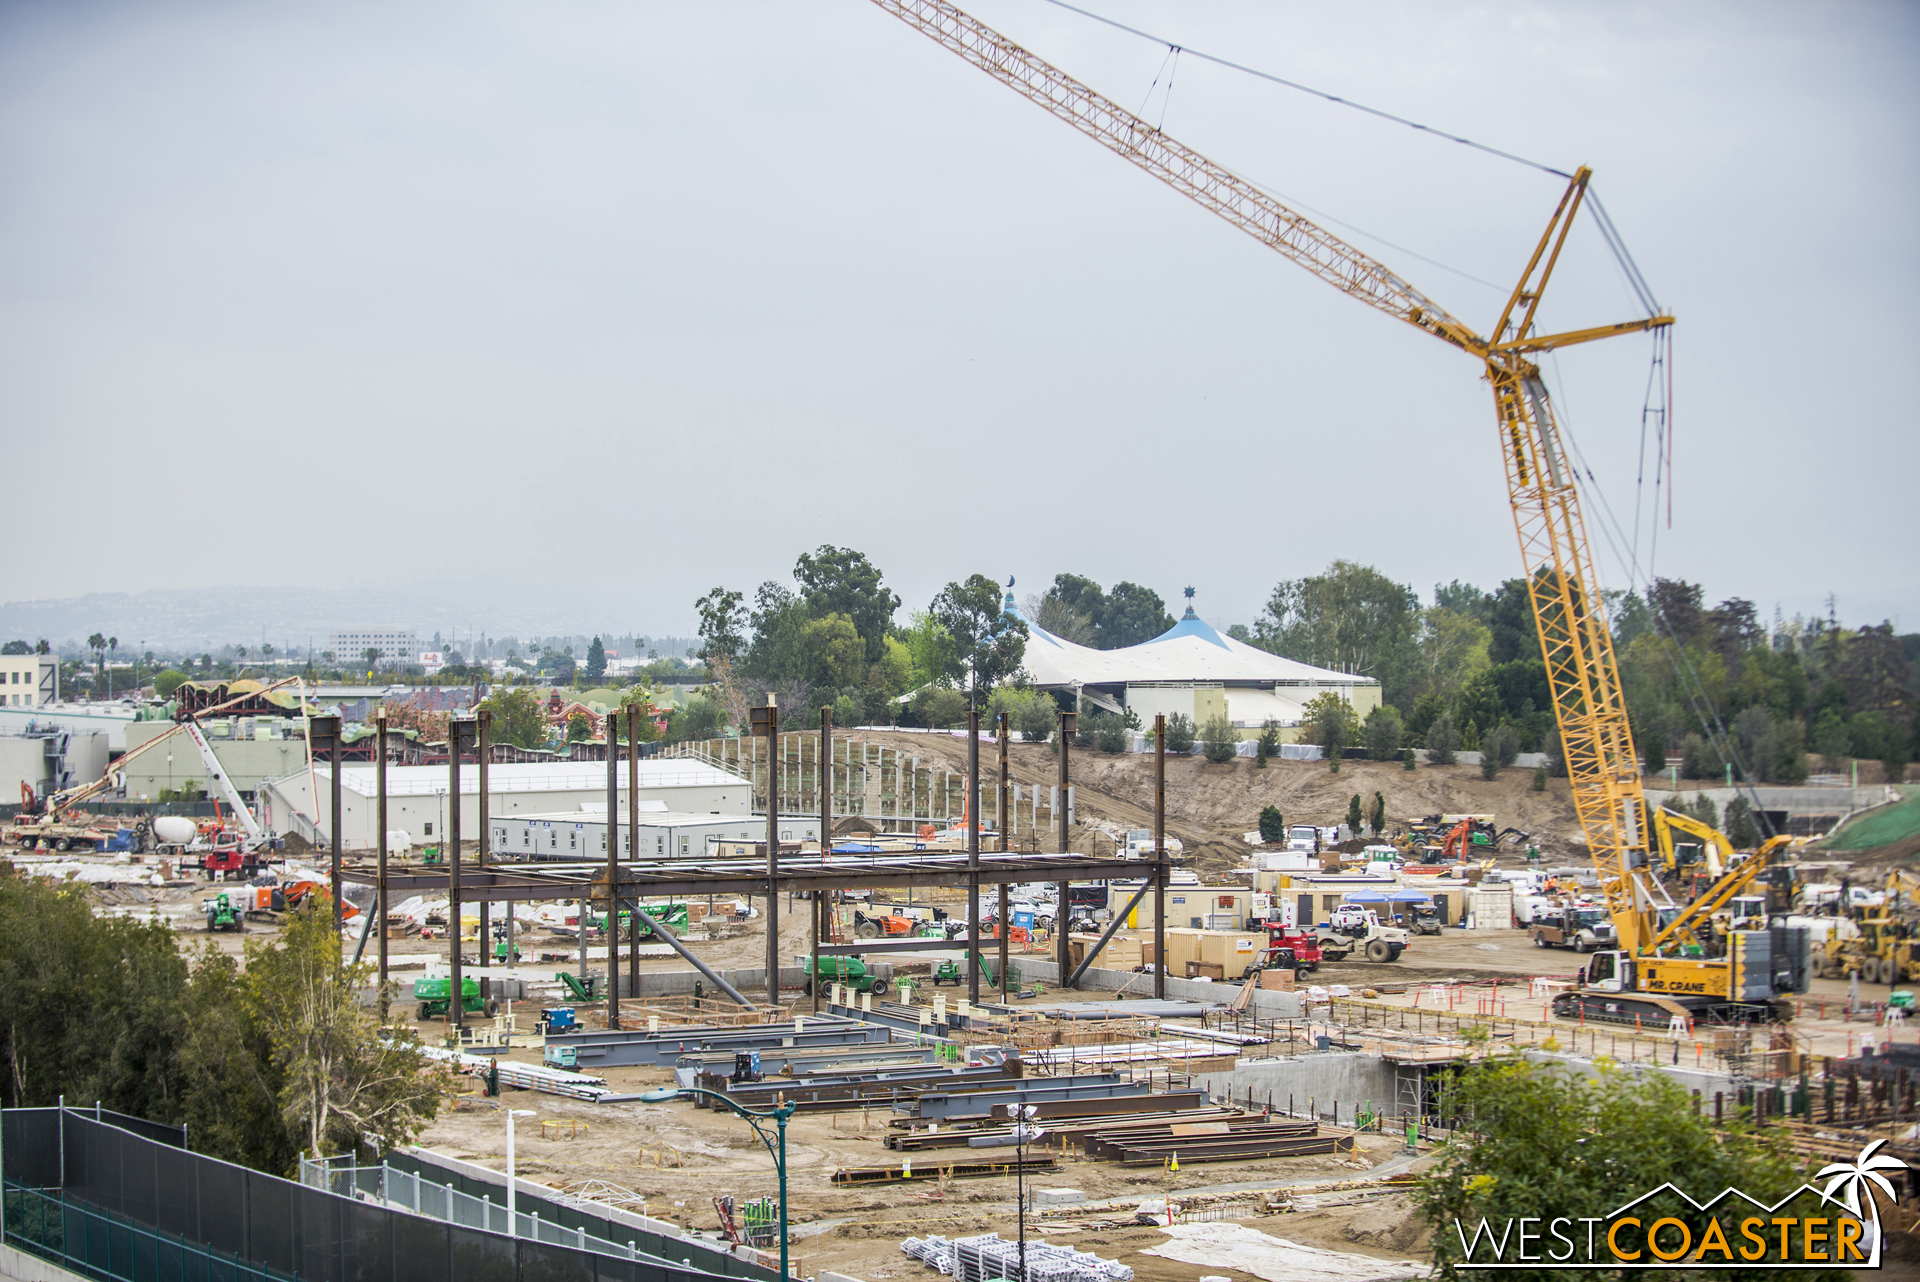 A closer look shows some braced frames and steel columns and beams.